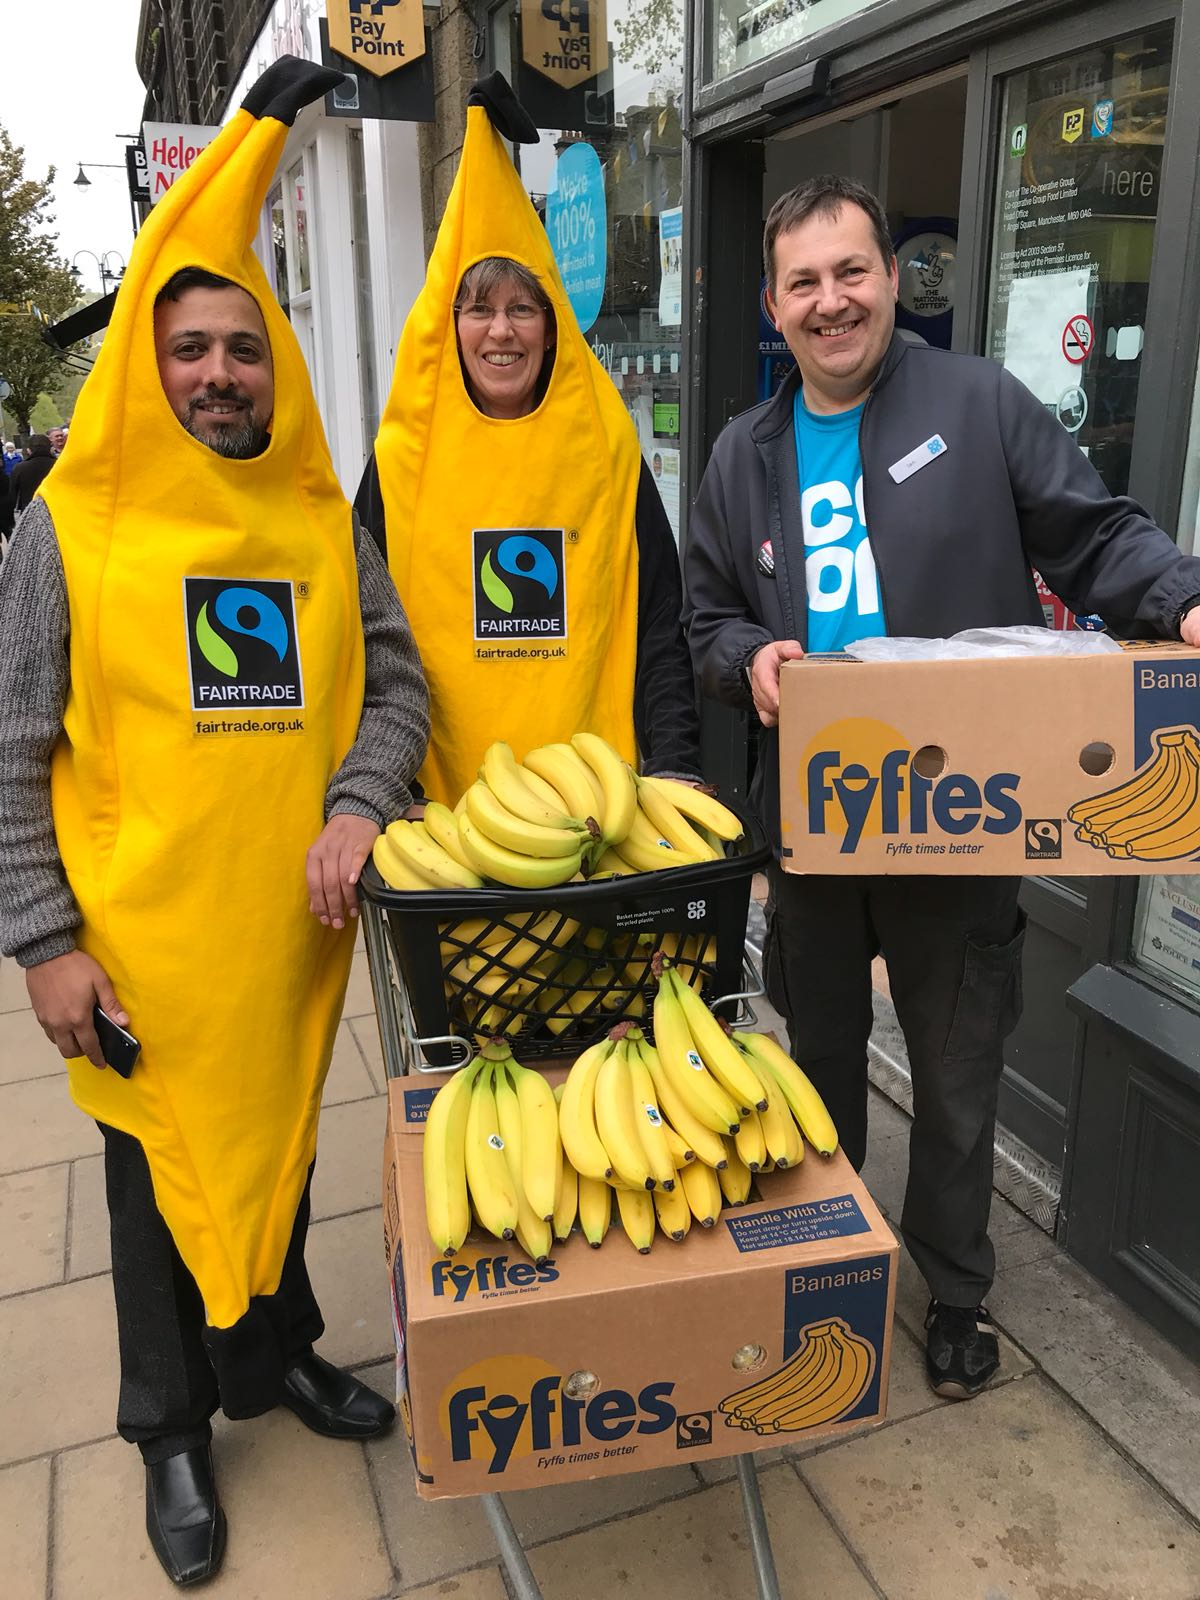 Tour de Yorkshire, Ilkley 4.5.18; Co-op and Ilkley FT group FT bananas giveaway (2)